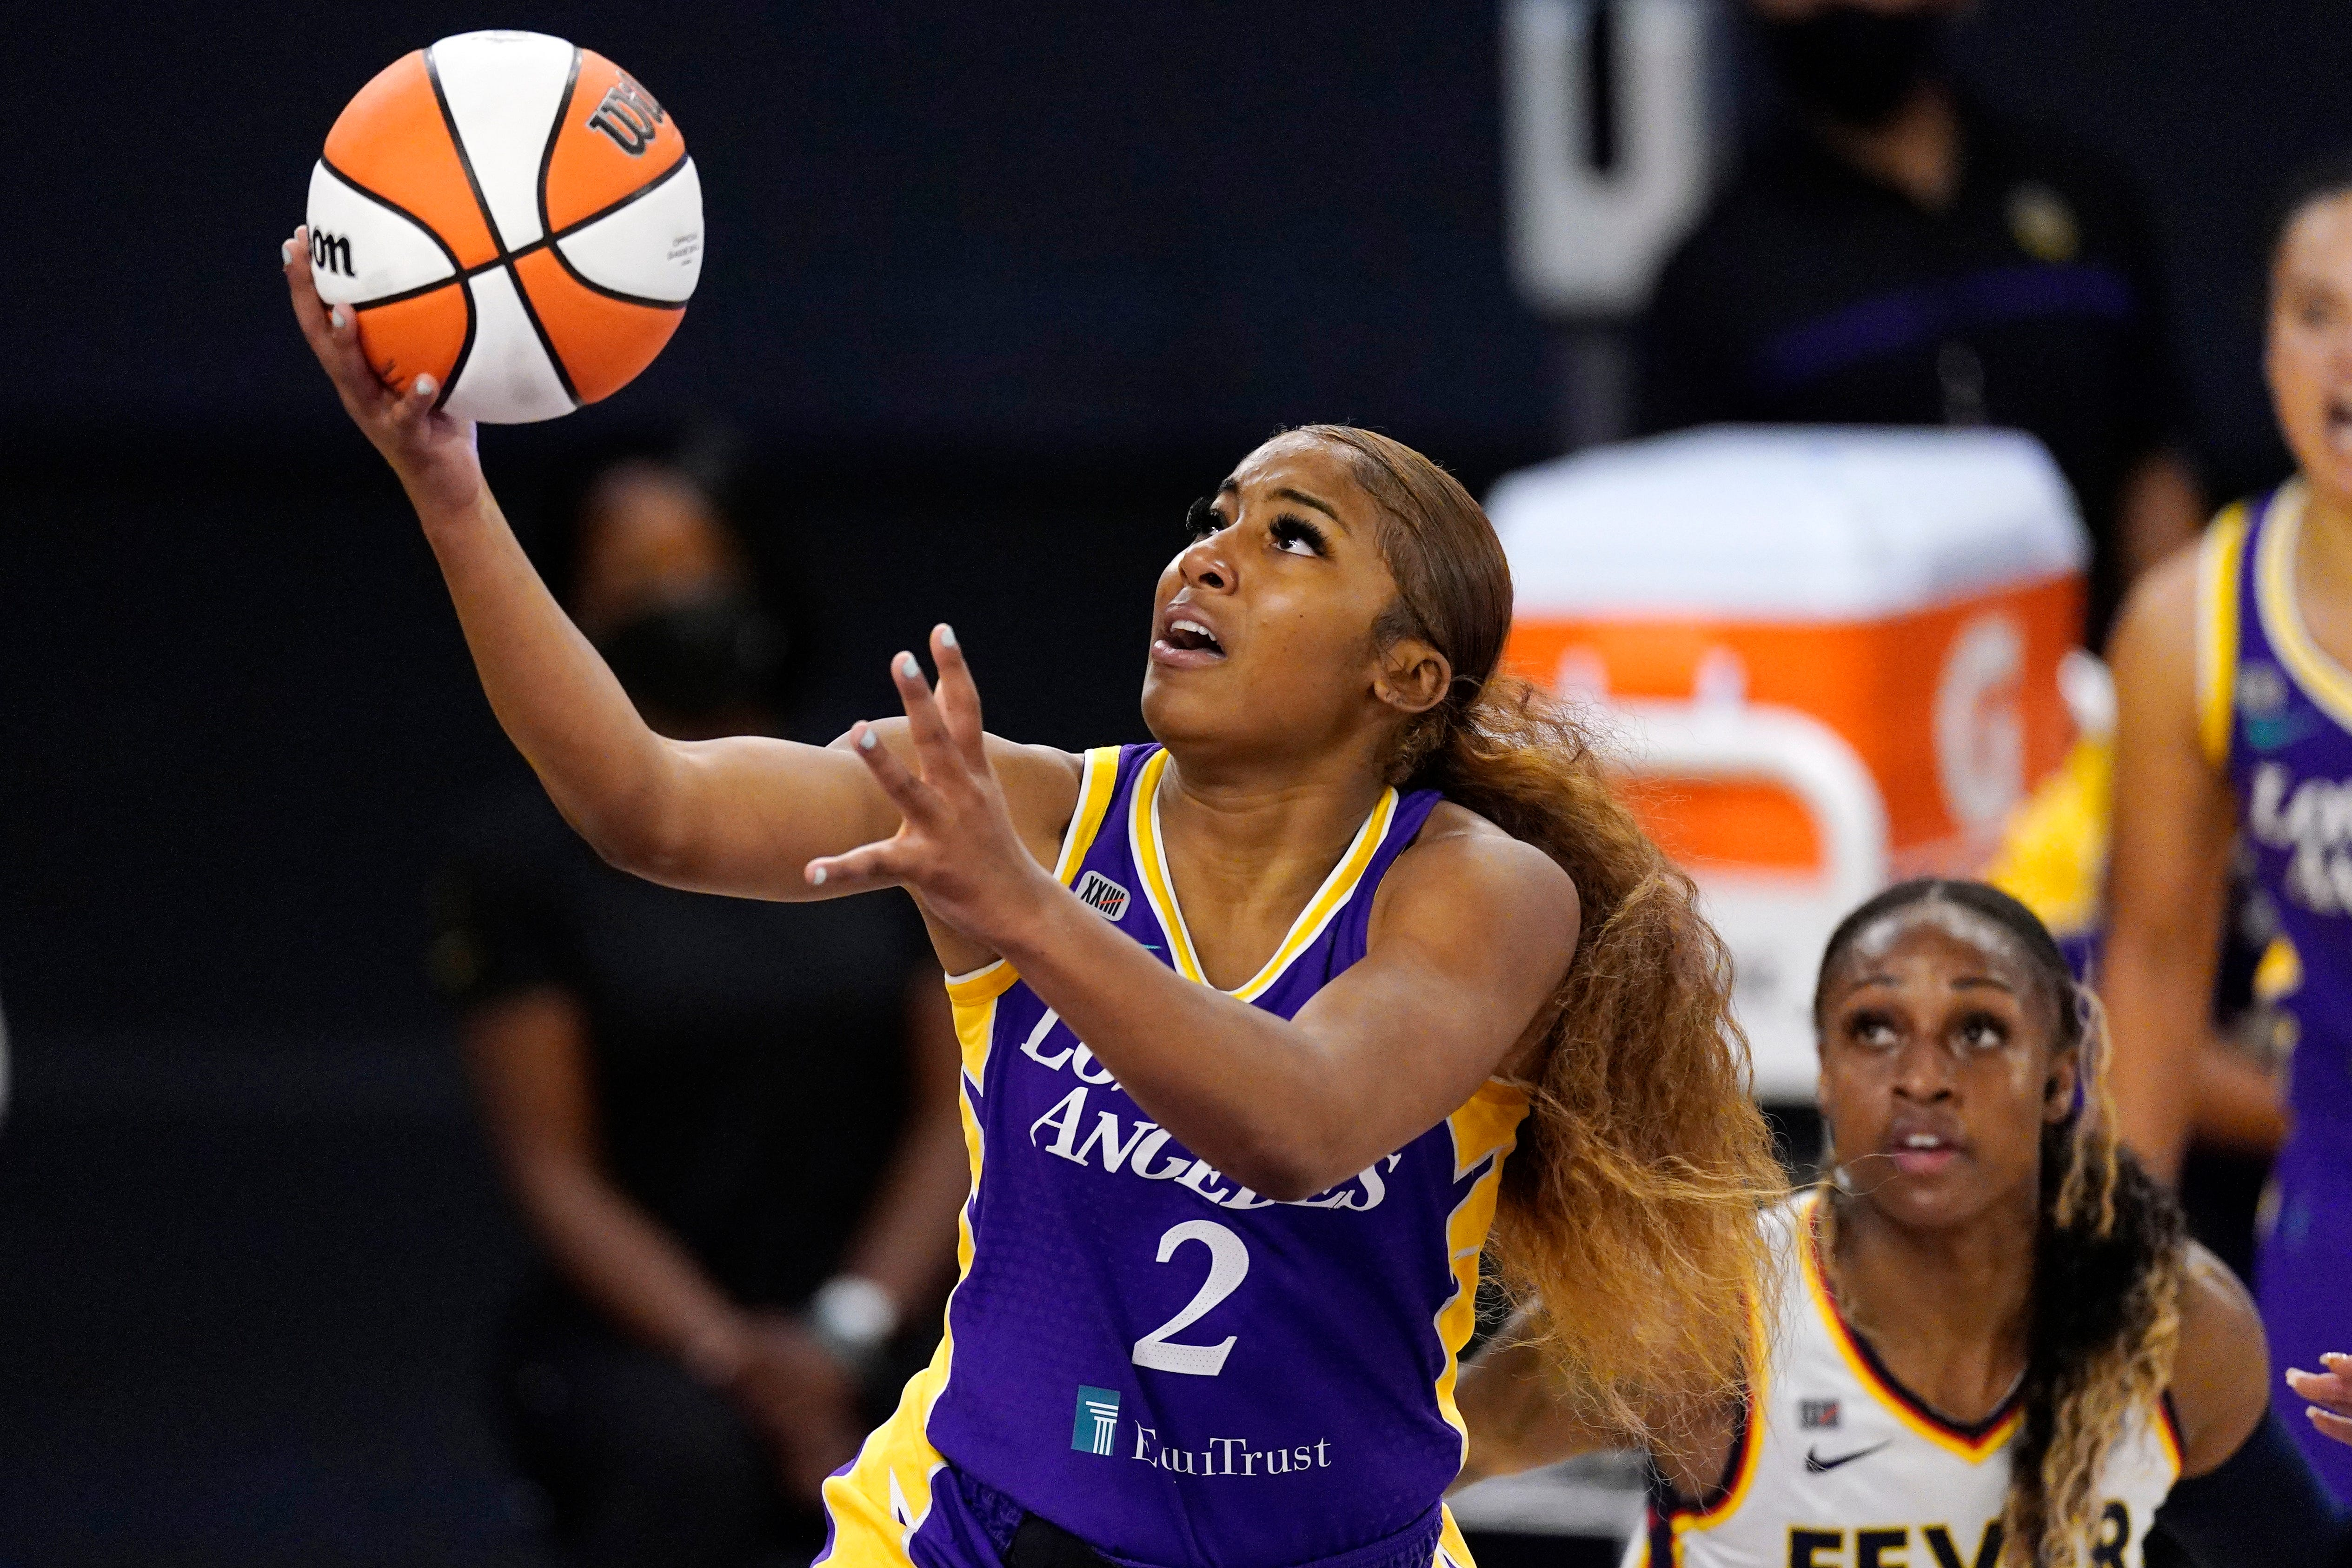 Jordan Brand makes history by partnering with 11 emerging WNBA players